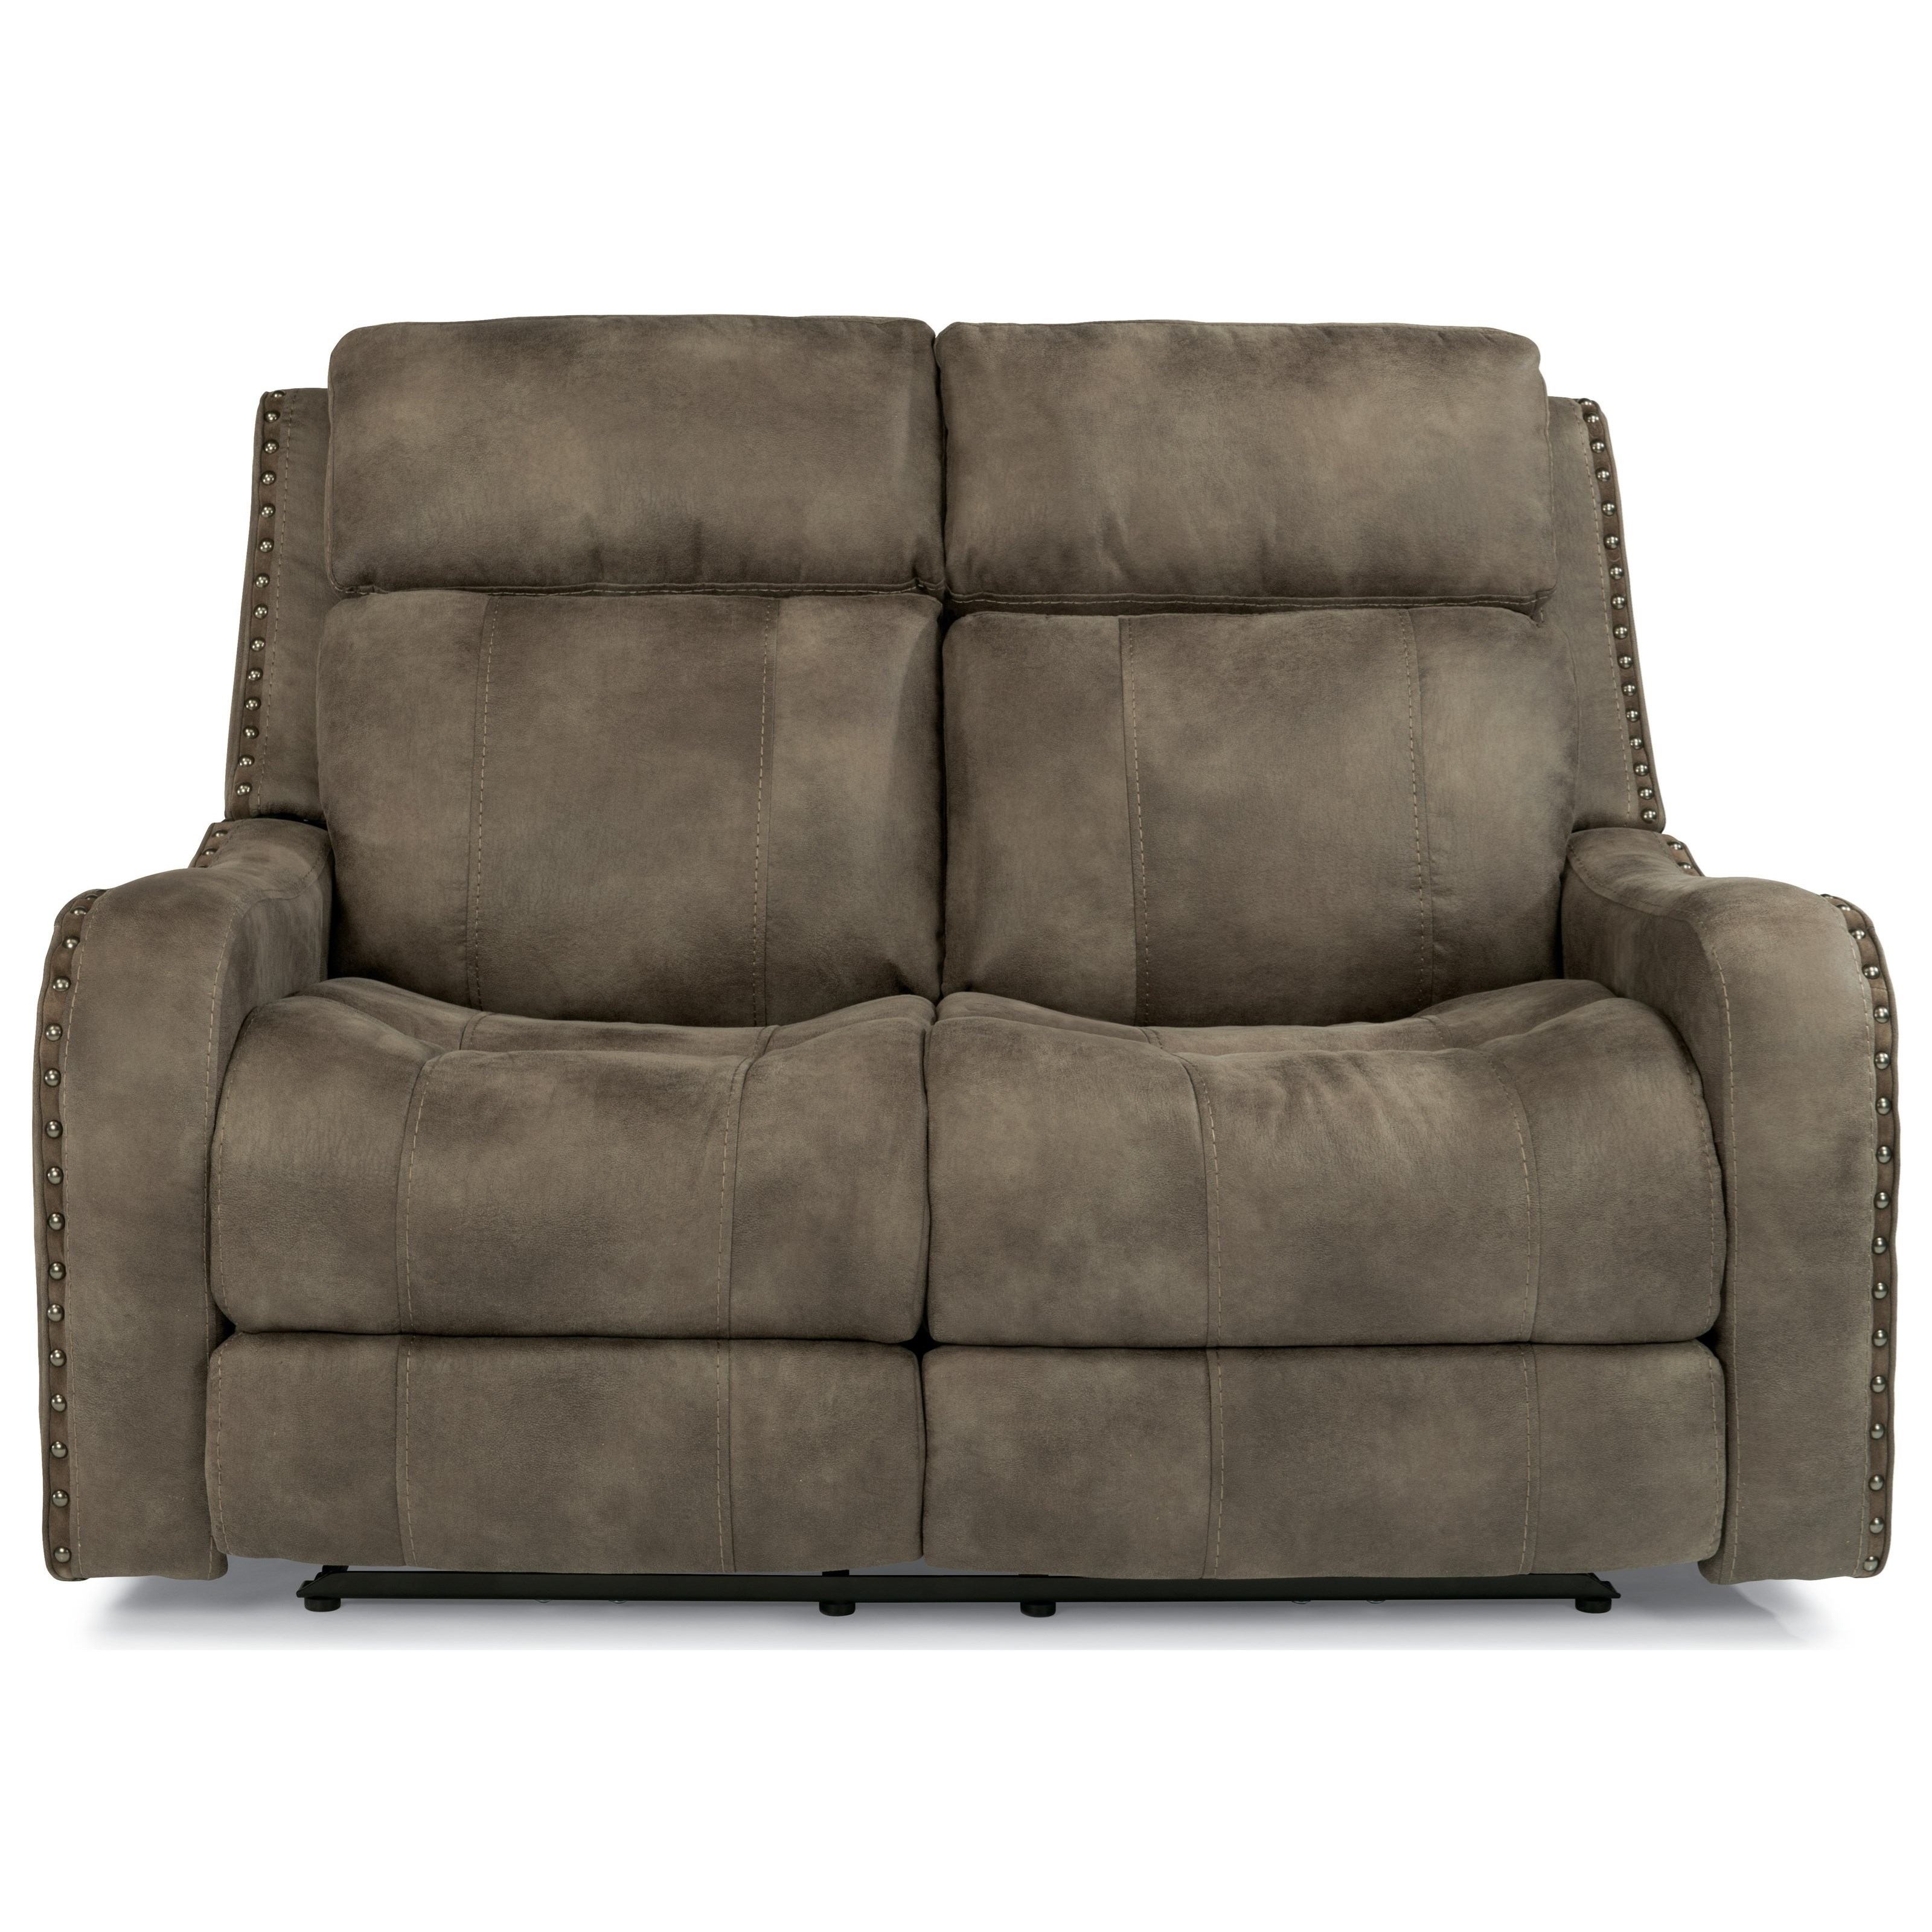 Flexsteel Latitudes-Springfield Pwr Rcl Loveseat w/ Pwr Headrest - Item Number: 1418-60PH